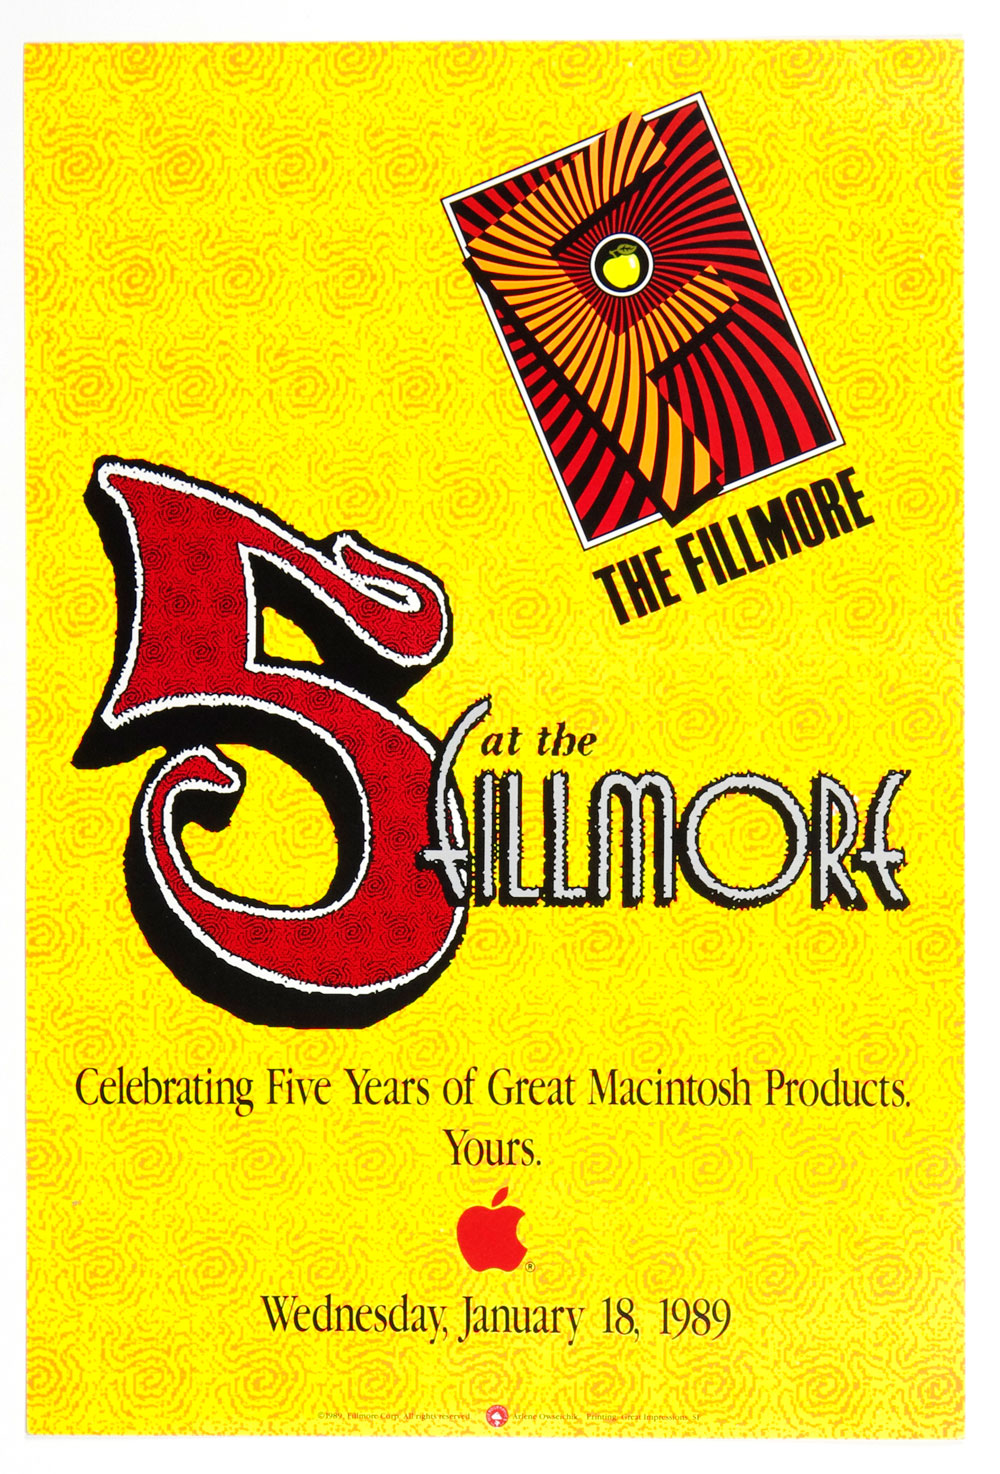 New Fillmore Poster Celebrating Five Years of Great Mcintosh Products